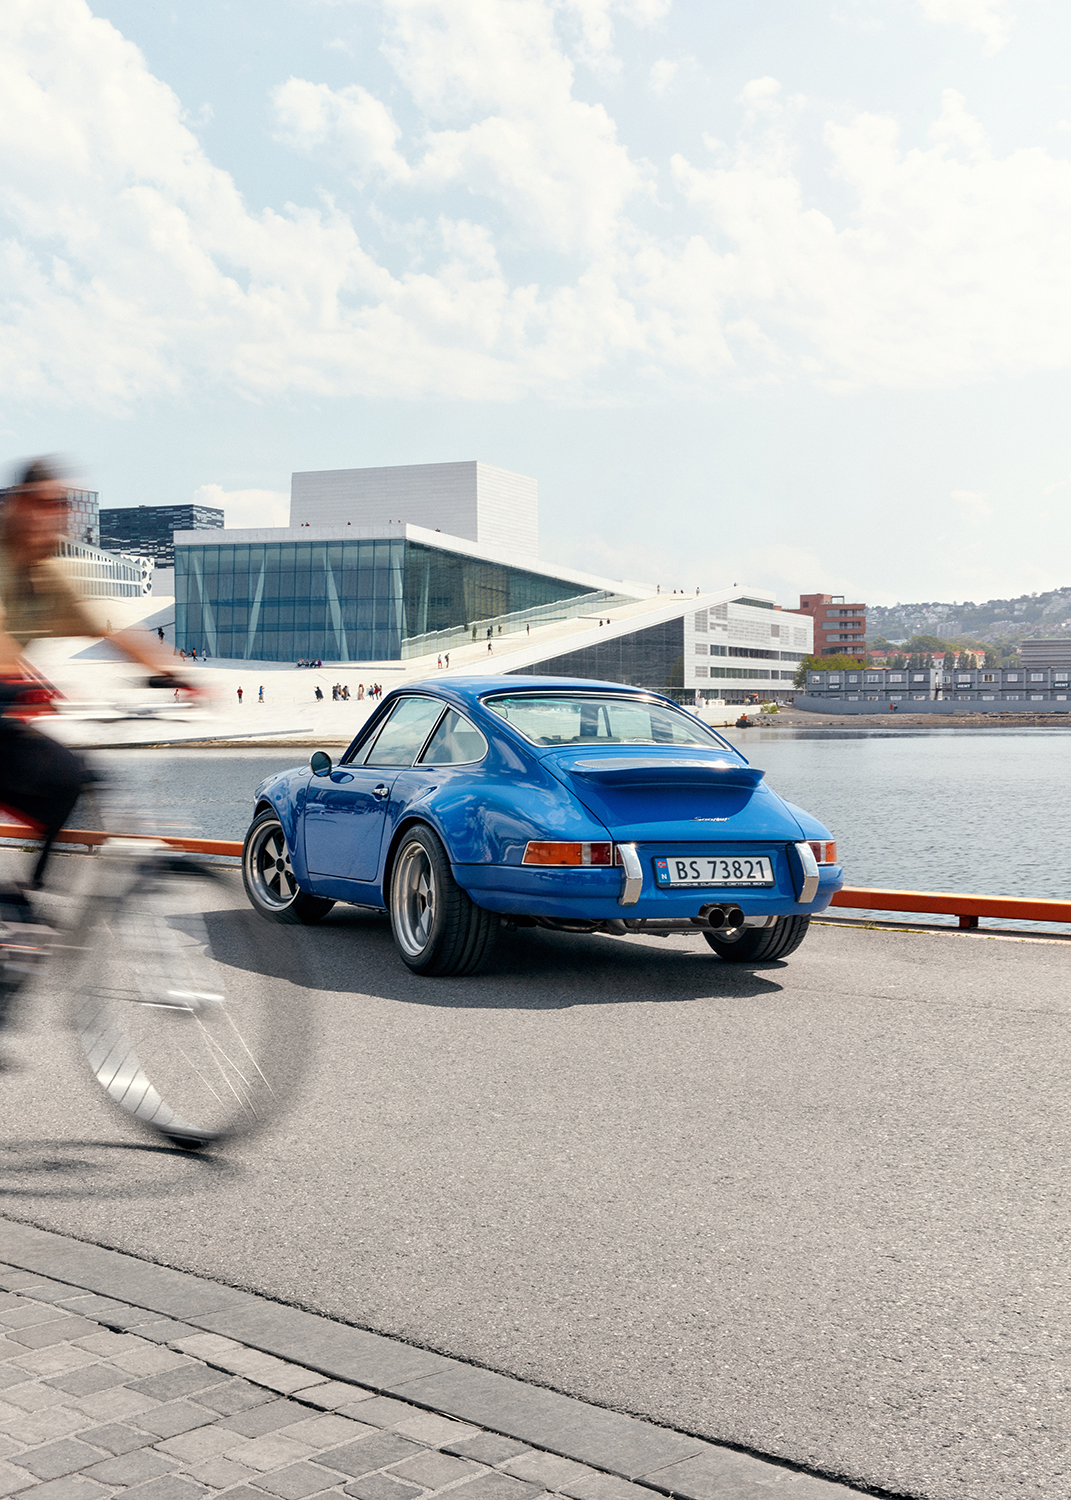 "Photographes of the 1991 Porsche 911 Sooner Edition, created together with Axel Catton. Images to be credited ""Photo: Marius Viken""."